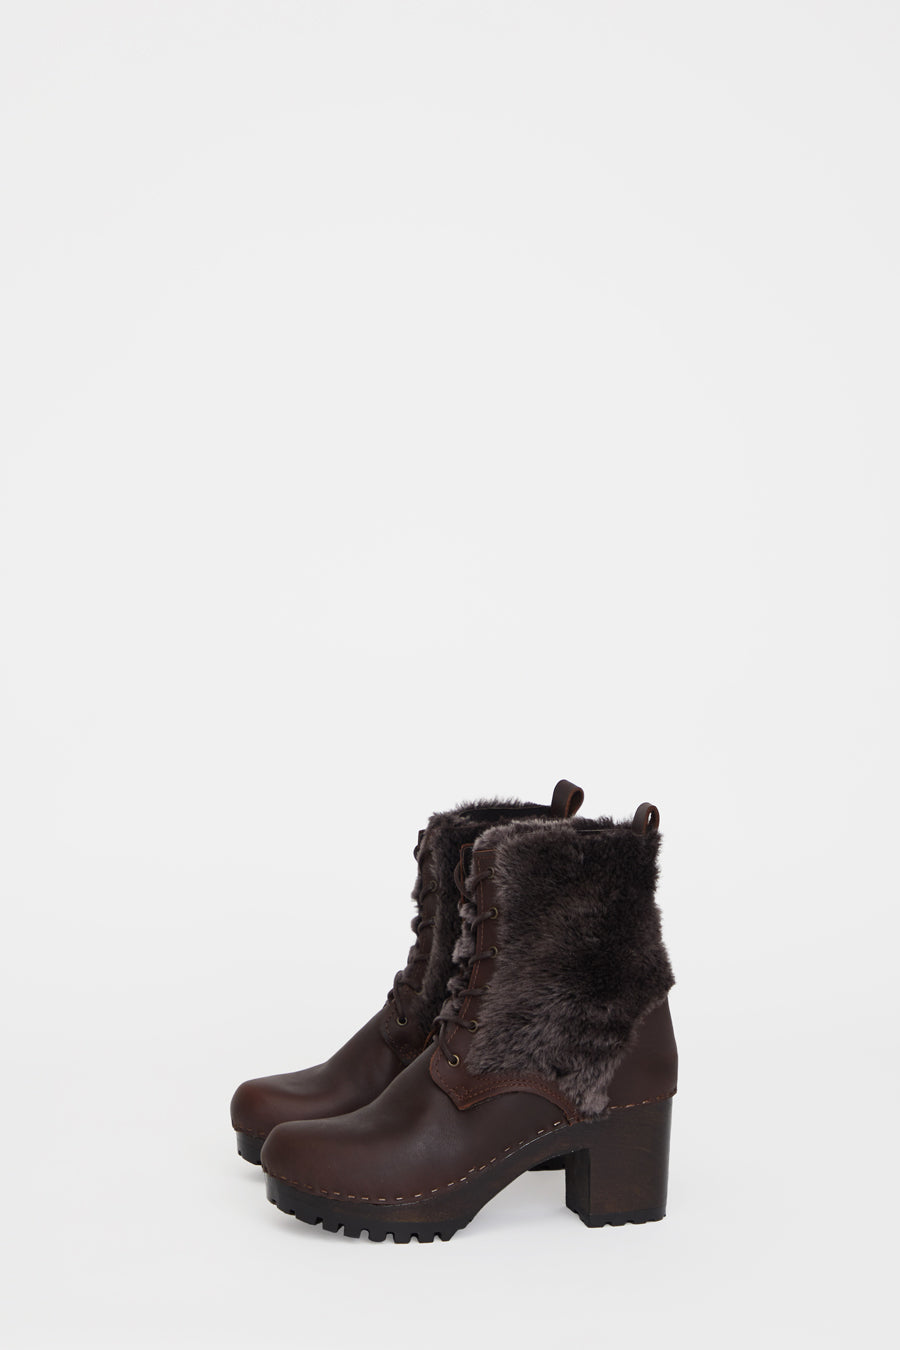 No.6 Audubon Shearling Lace Up Clog Boot on High Tread in Molasses / Black Brindle on Coffee Base